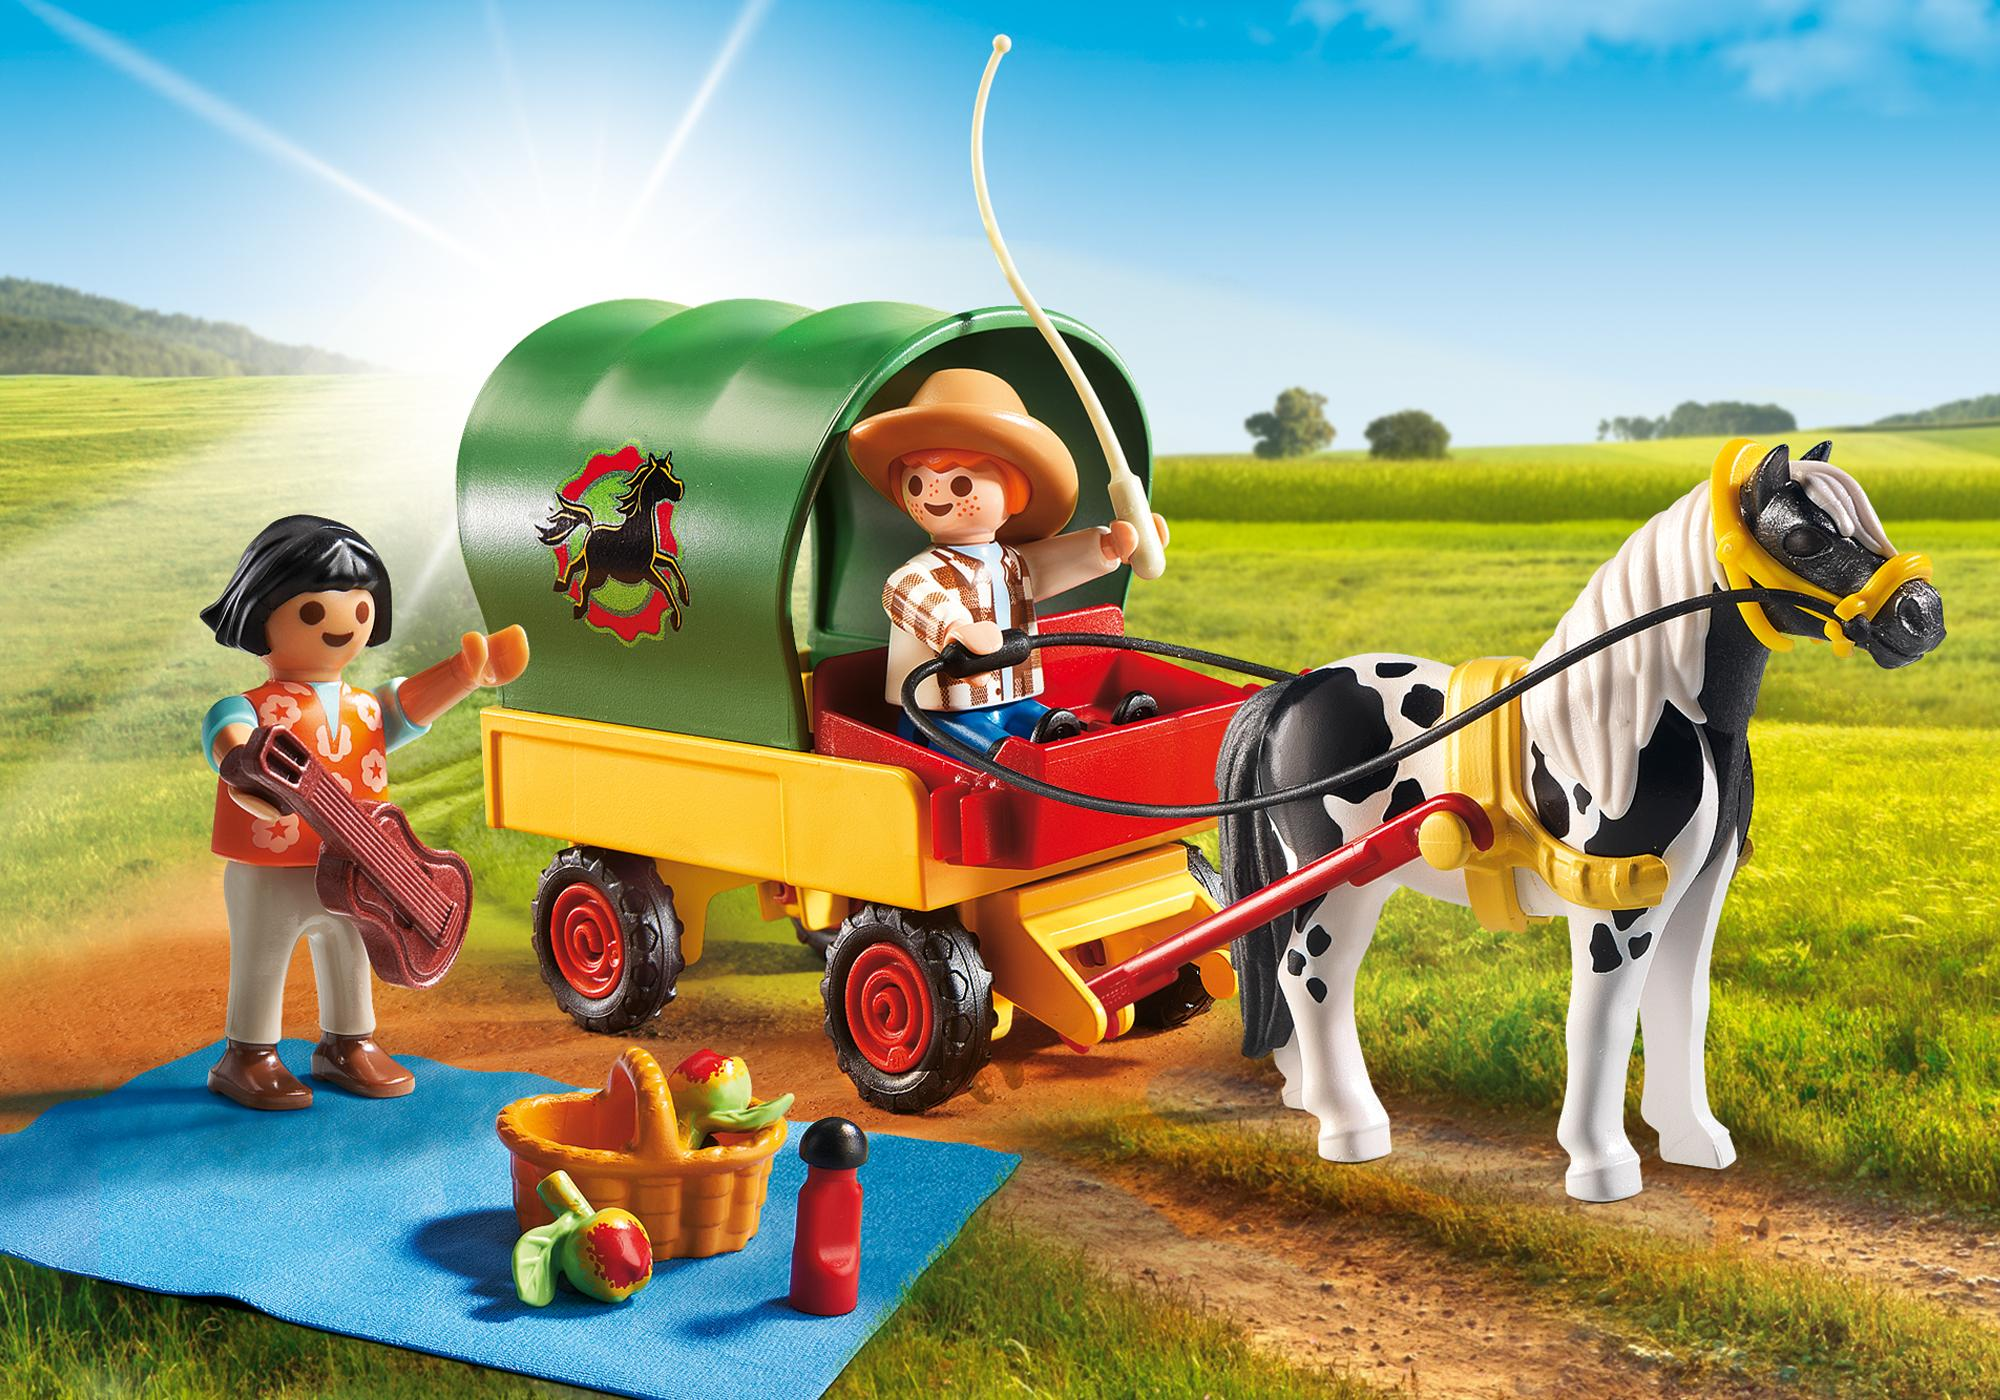 http://media.playmobil.com/i/playmobil/6948_product_detail/Piquenique com pónei e carro